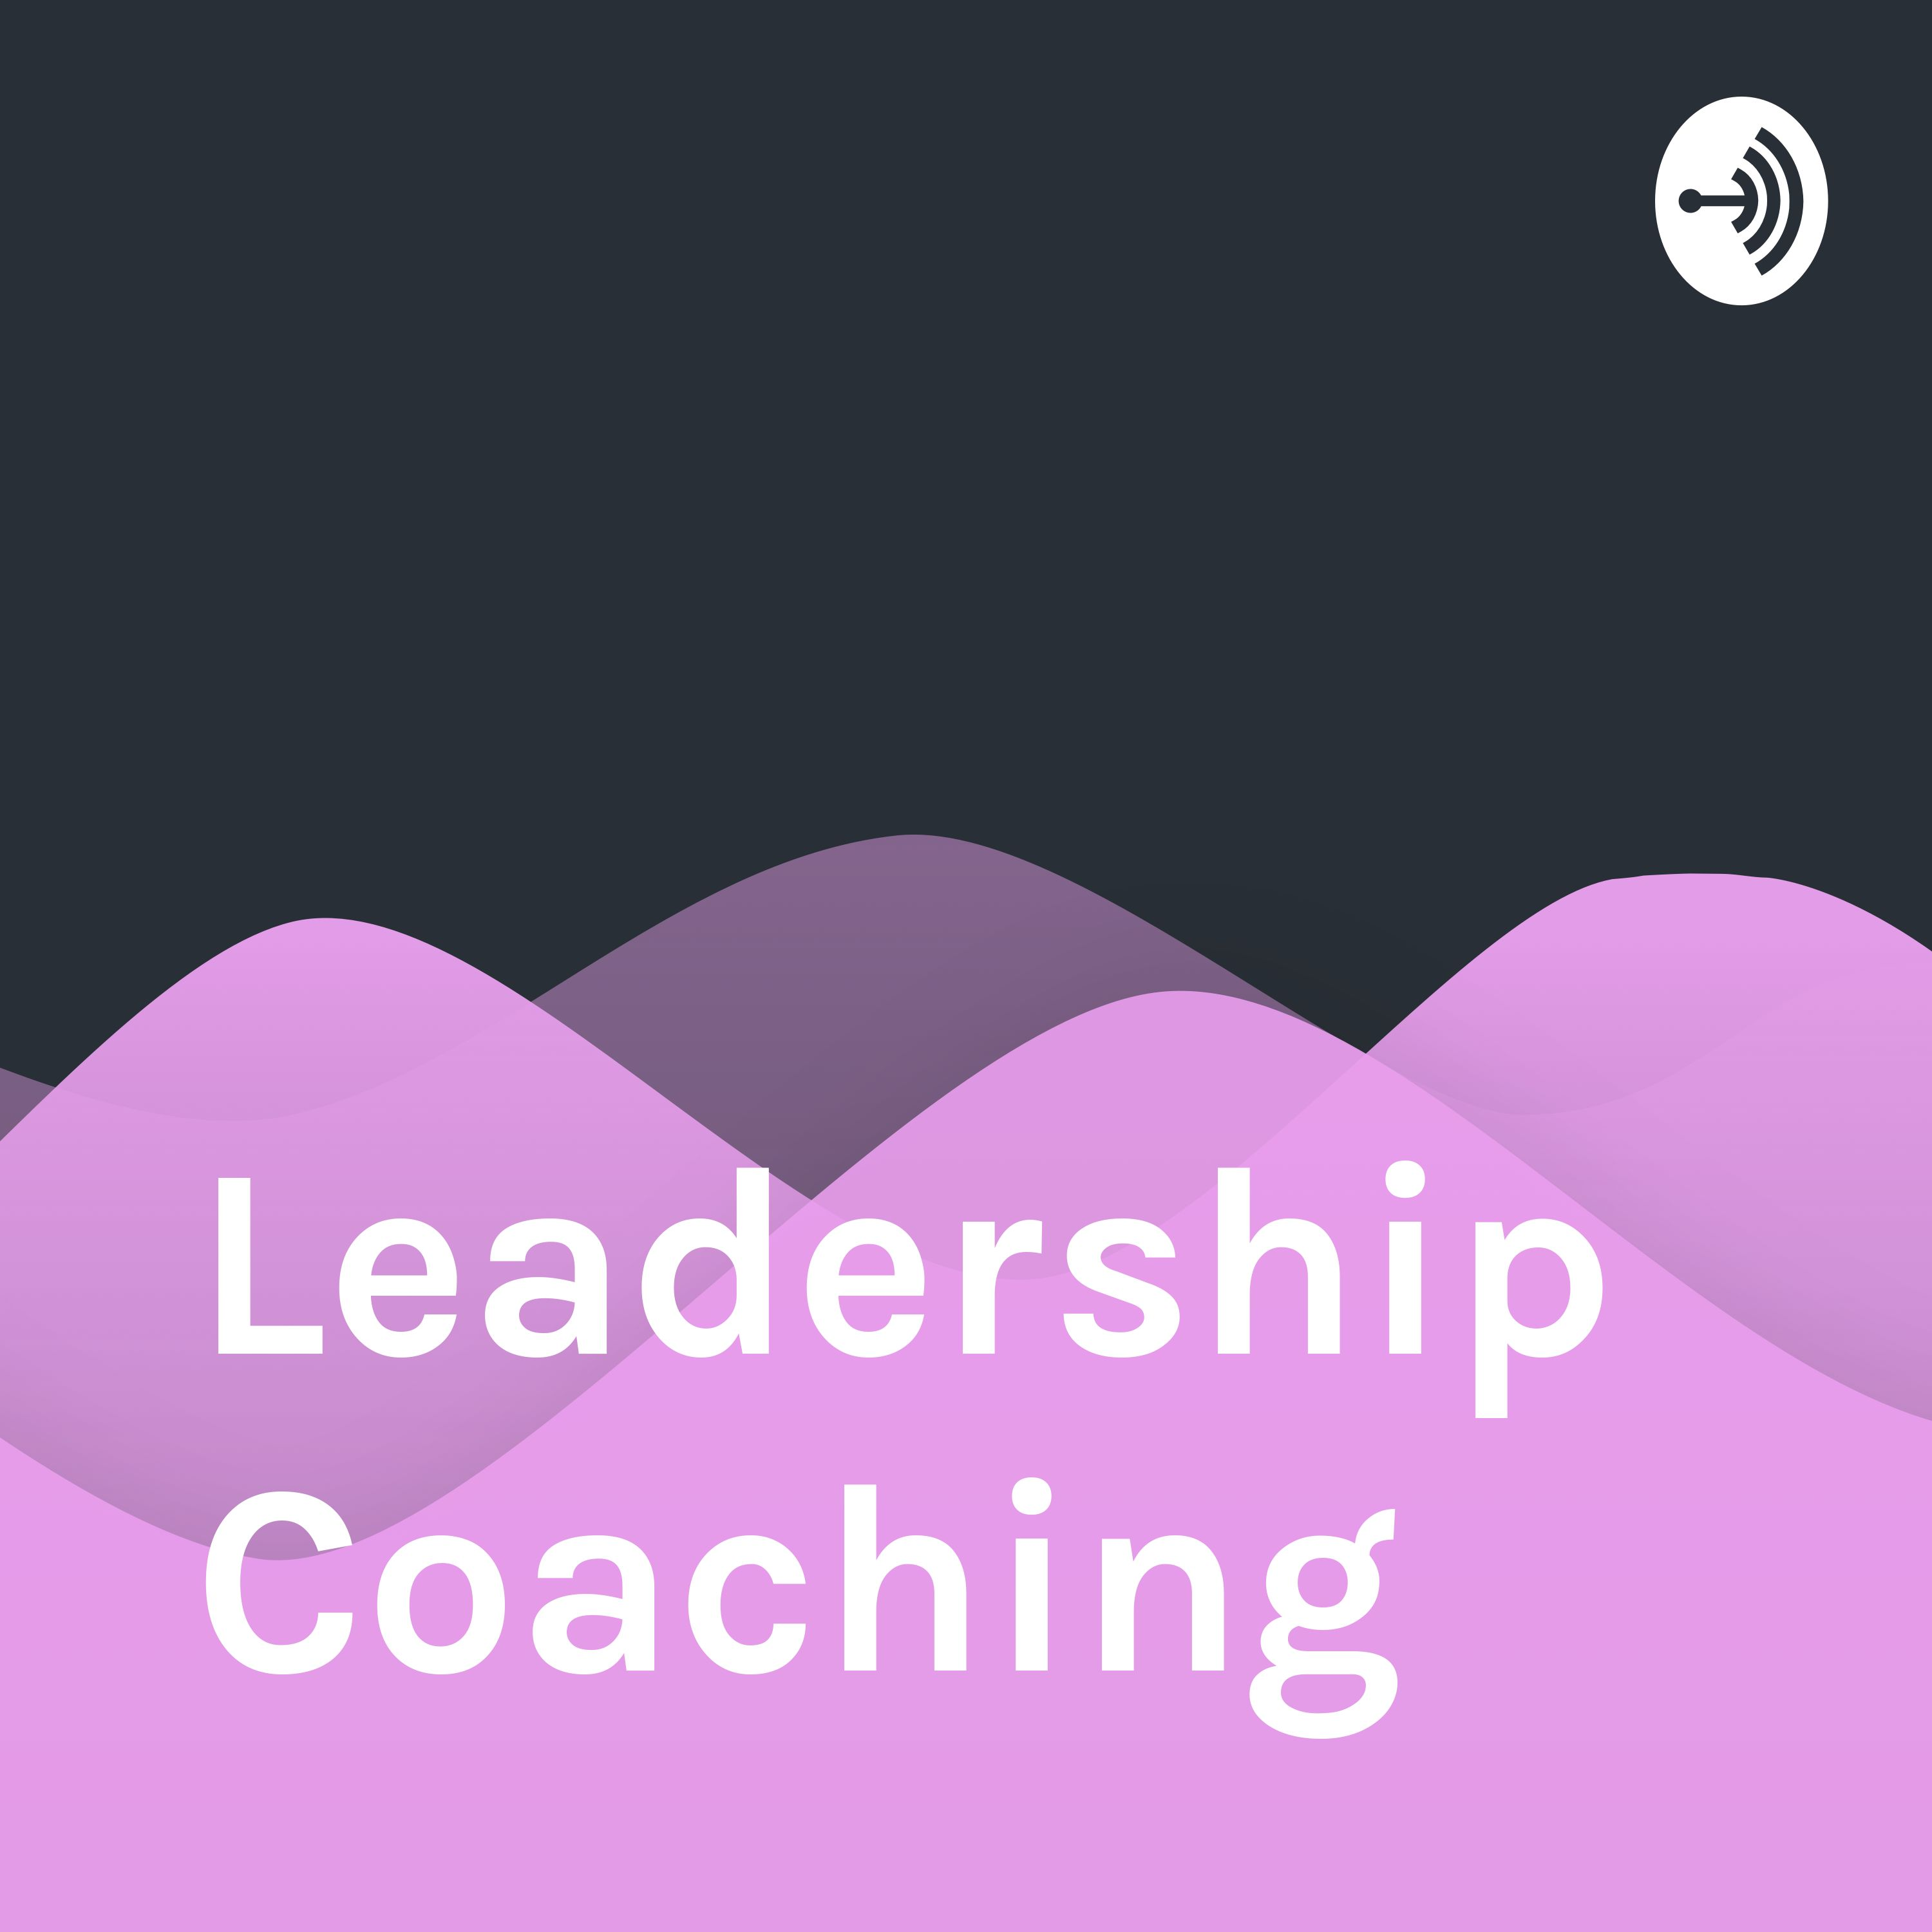 Leadership Coaching - Growthmindset